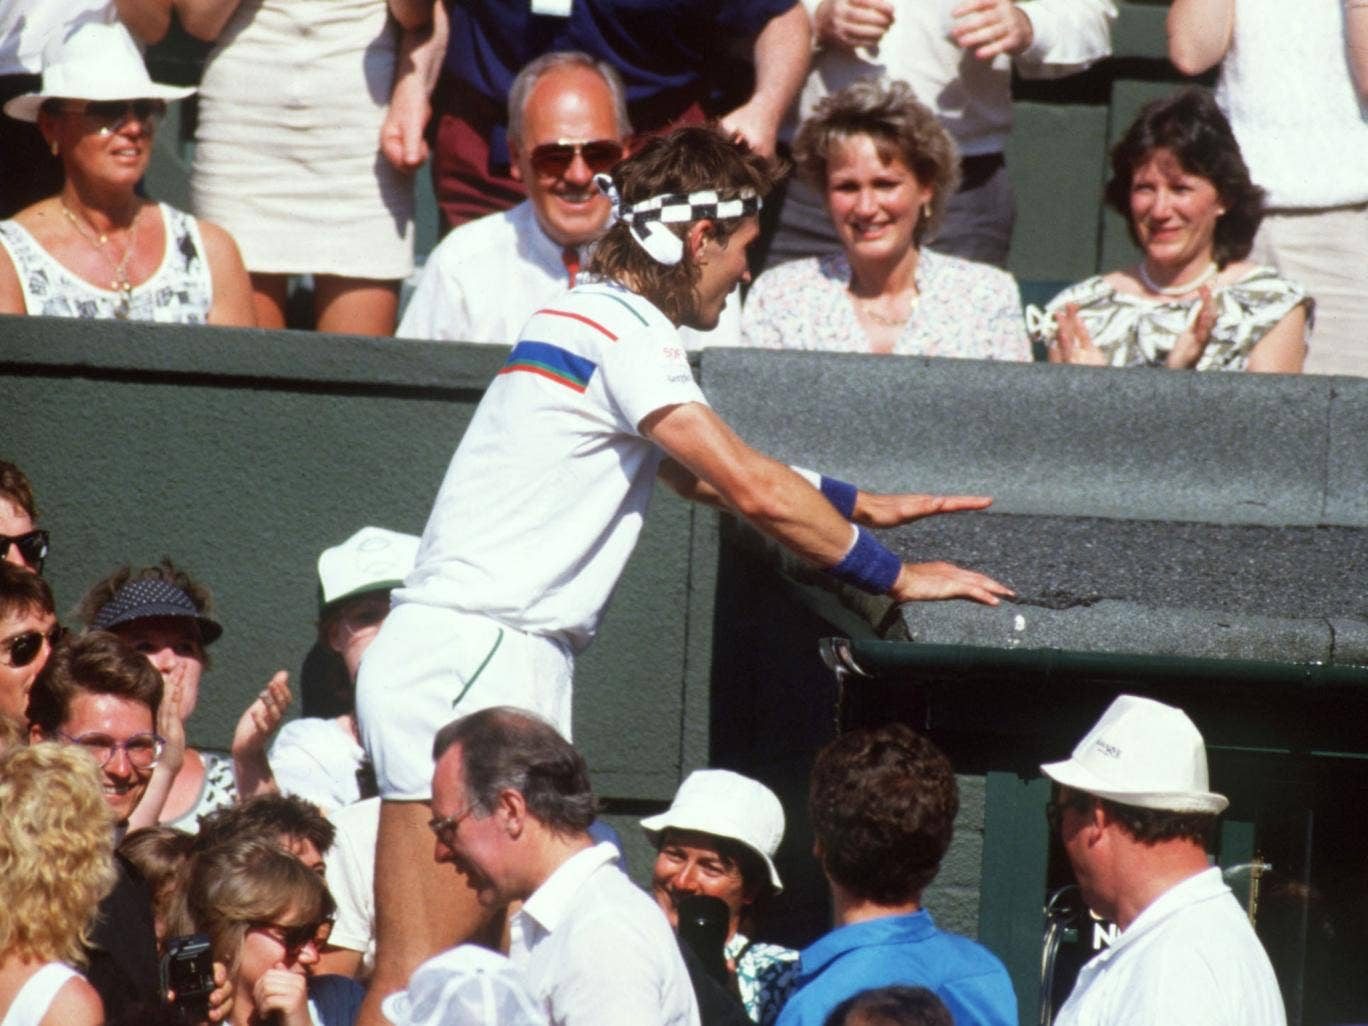 Pat Cash clambered into the crowd following his win against  Ivan Lendl at Wimbledon in 1987